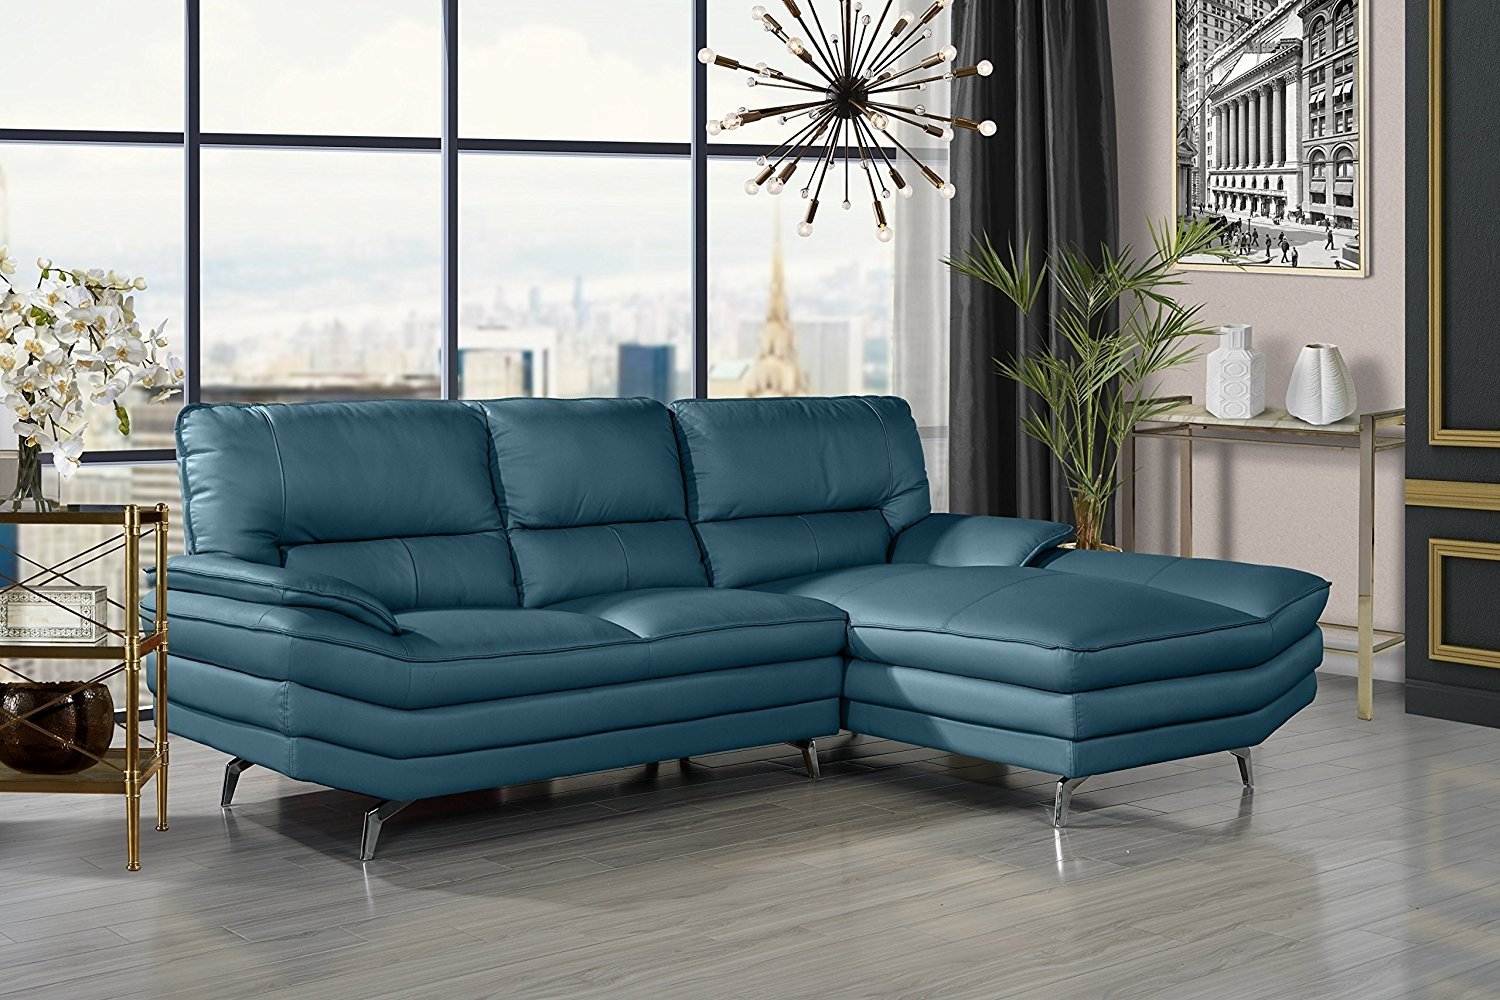 living room leather sectional sofa l shape couch with chaise lounge teal walmart com